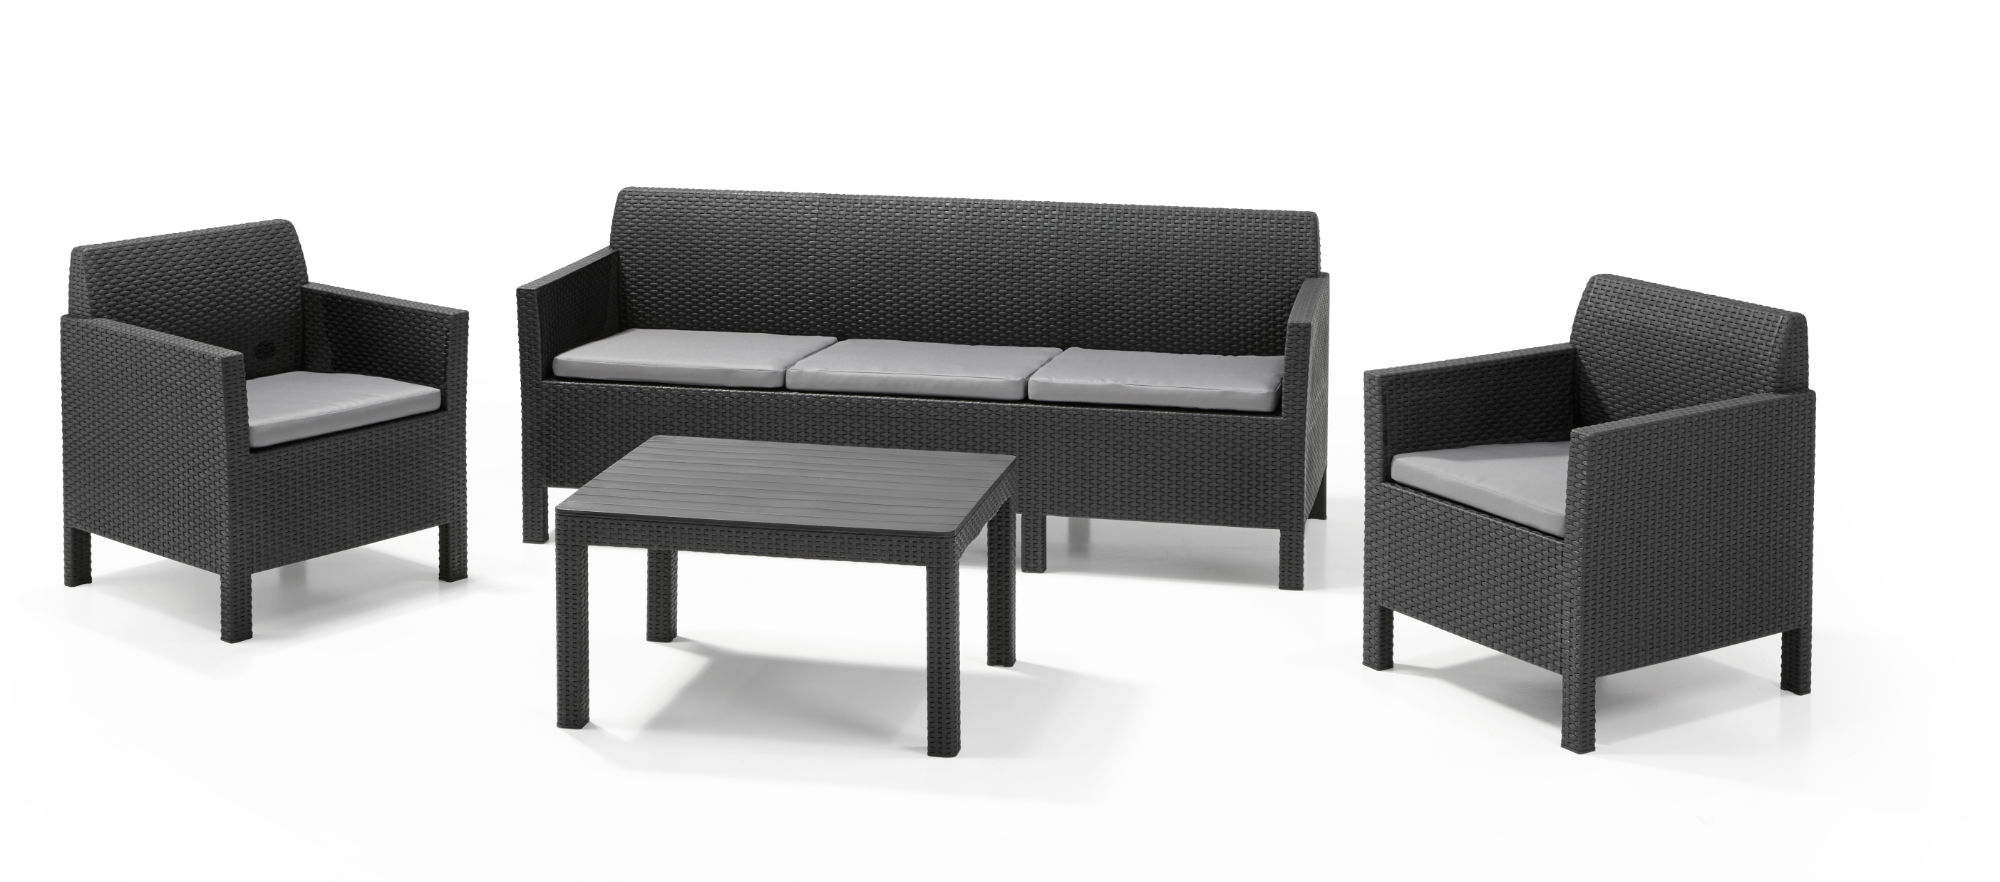 Allibert orlando ensemble de salon graphite canap trois - Salon de jardin ibiza ...